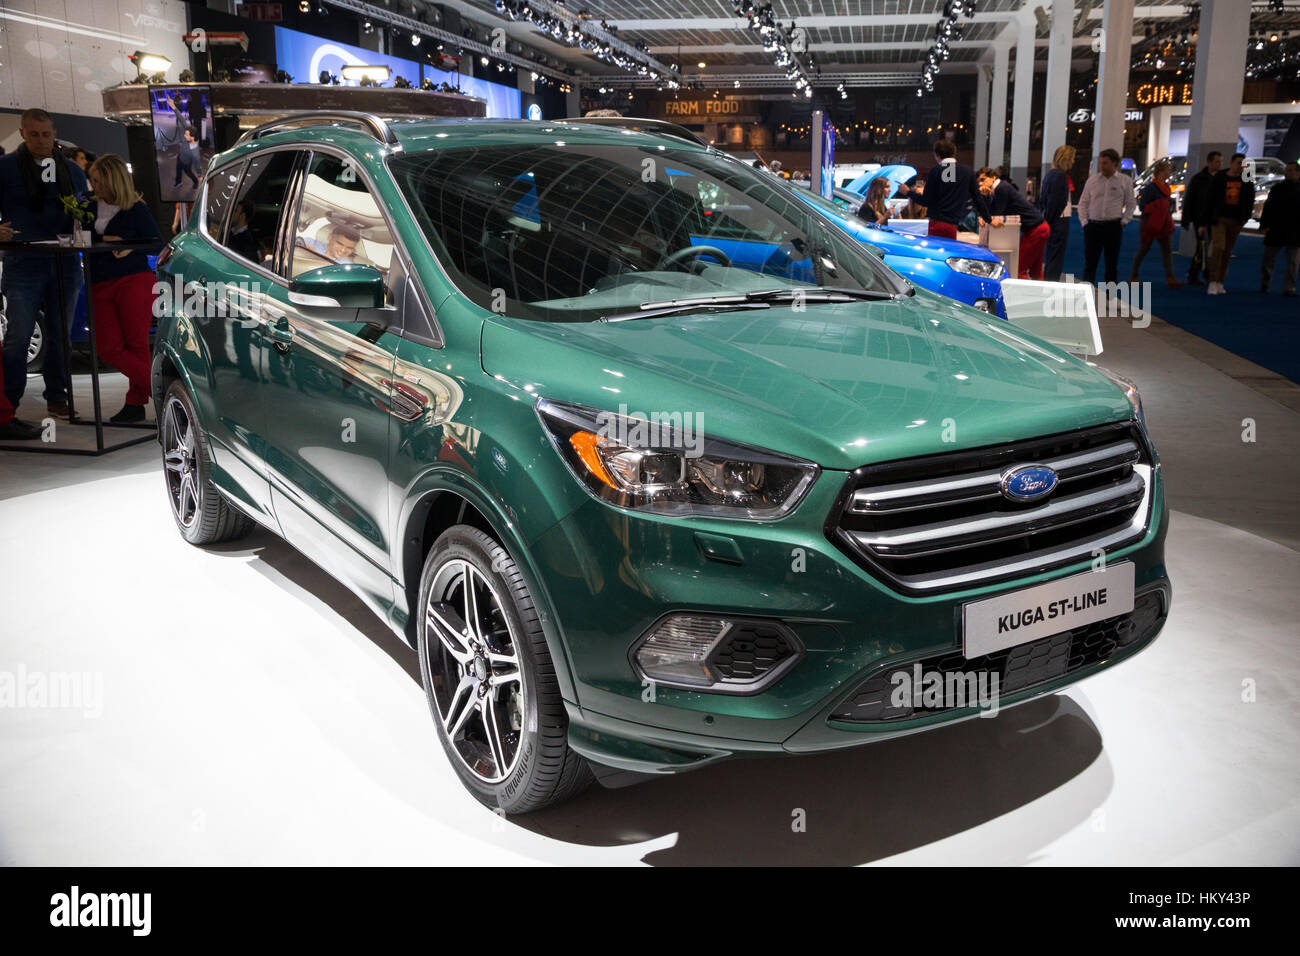 brussels jan 19 2017 new 2017 ford kuga st line. Black Bedroom Furniture Sets. Home Design Ideas